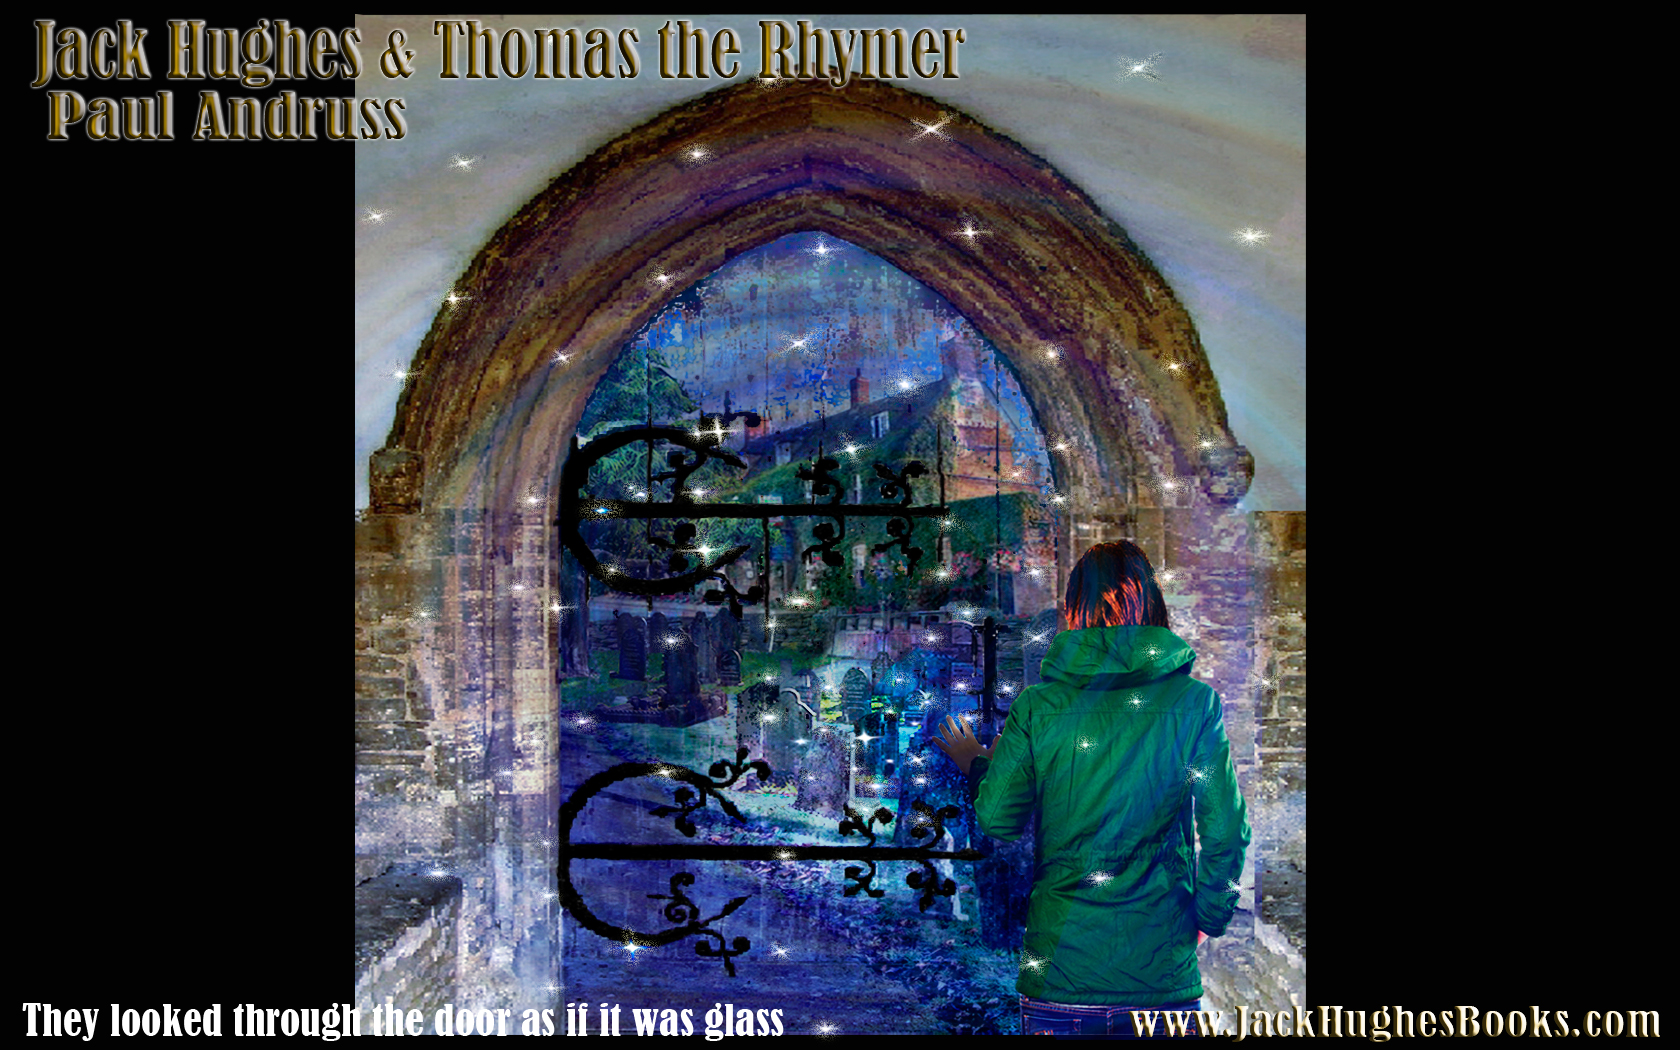 & Jack Hughes Books - Thomas the Rhymer - Story of the Book